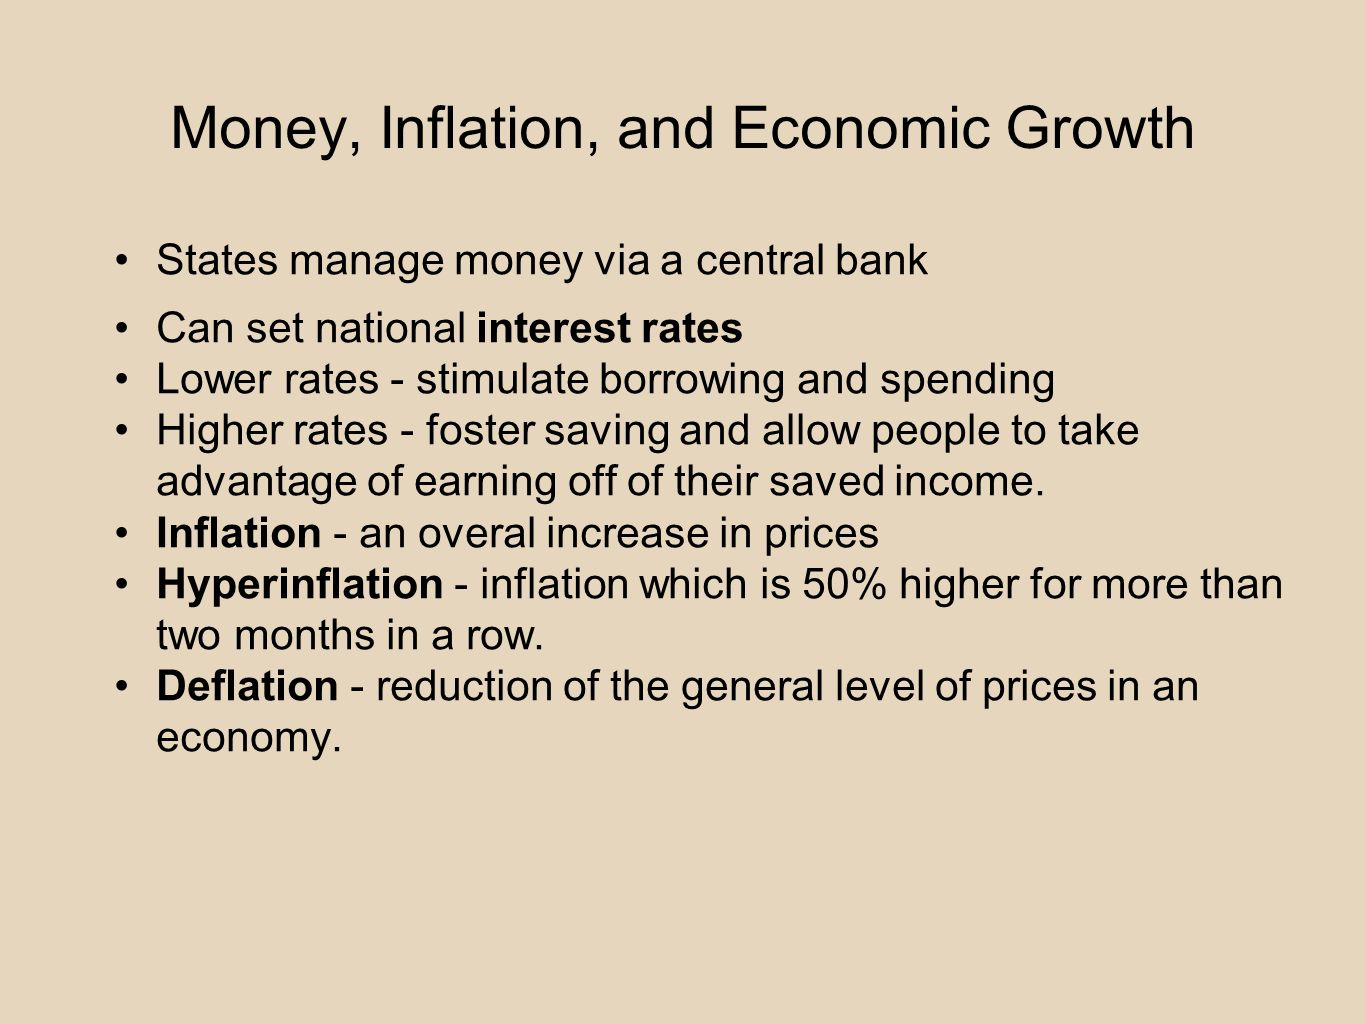 inflation and economic growth pdf